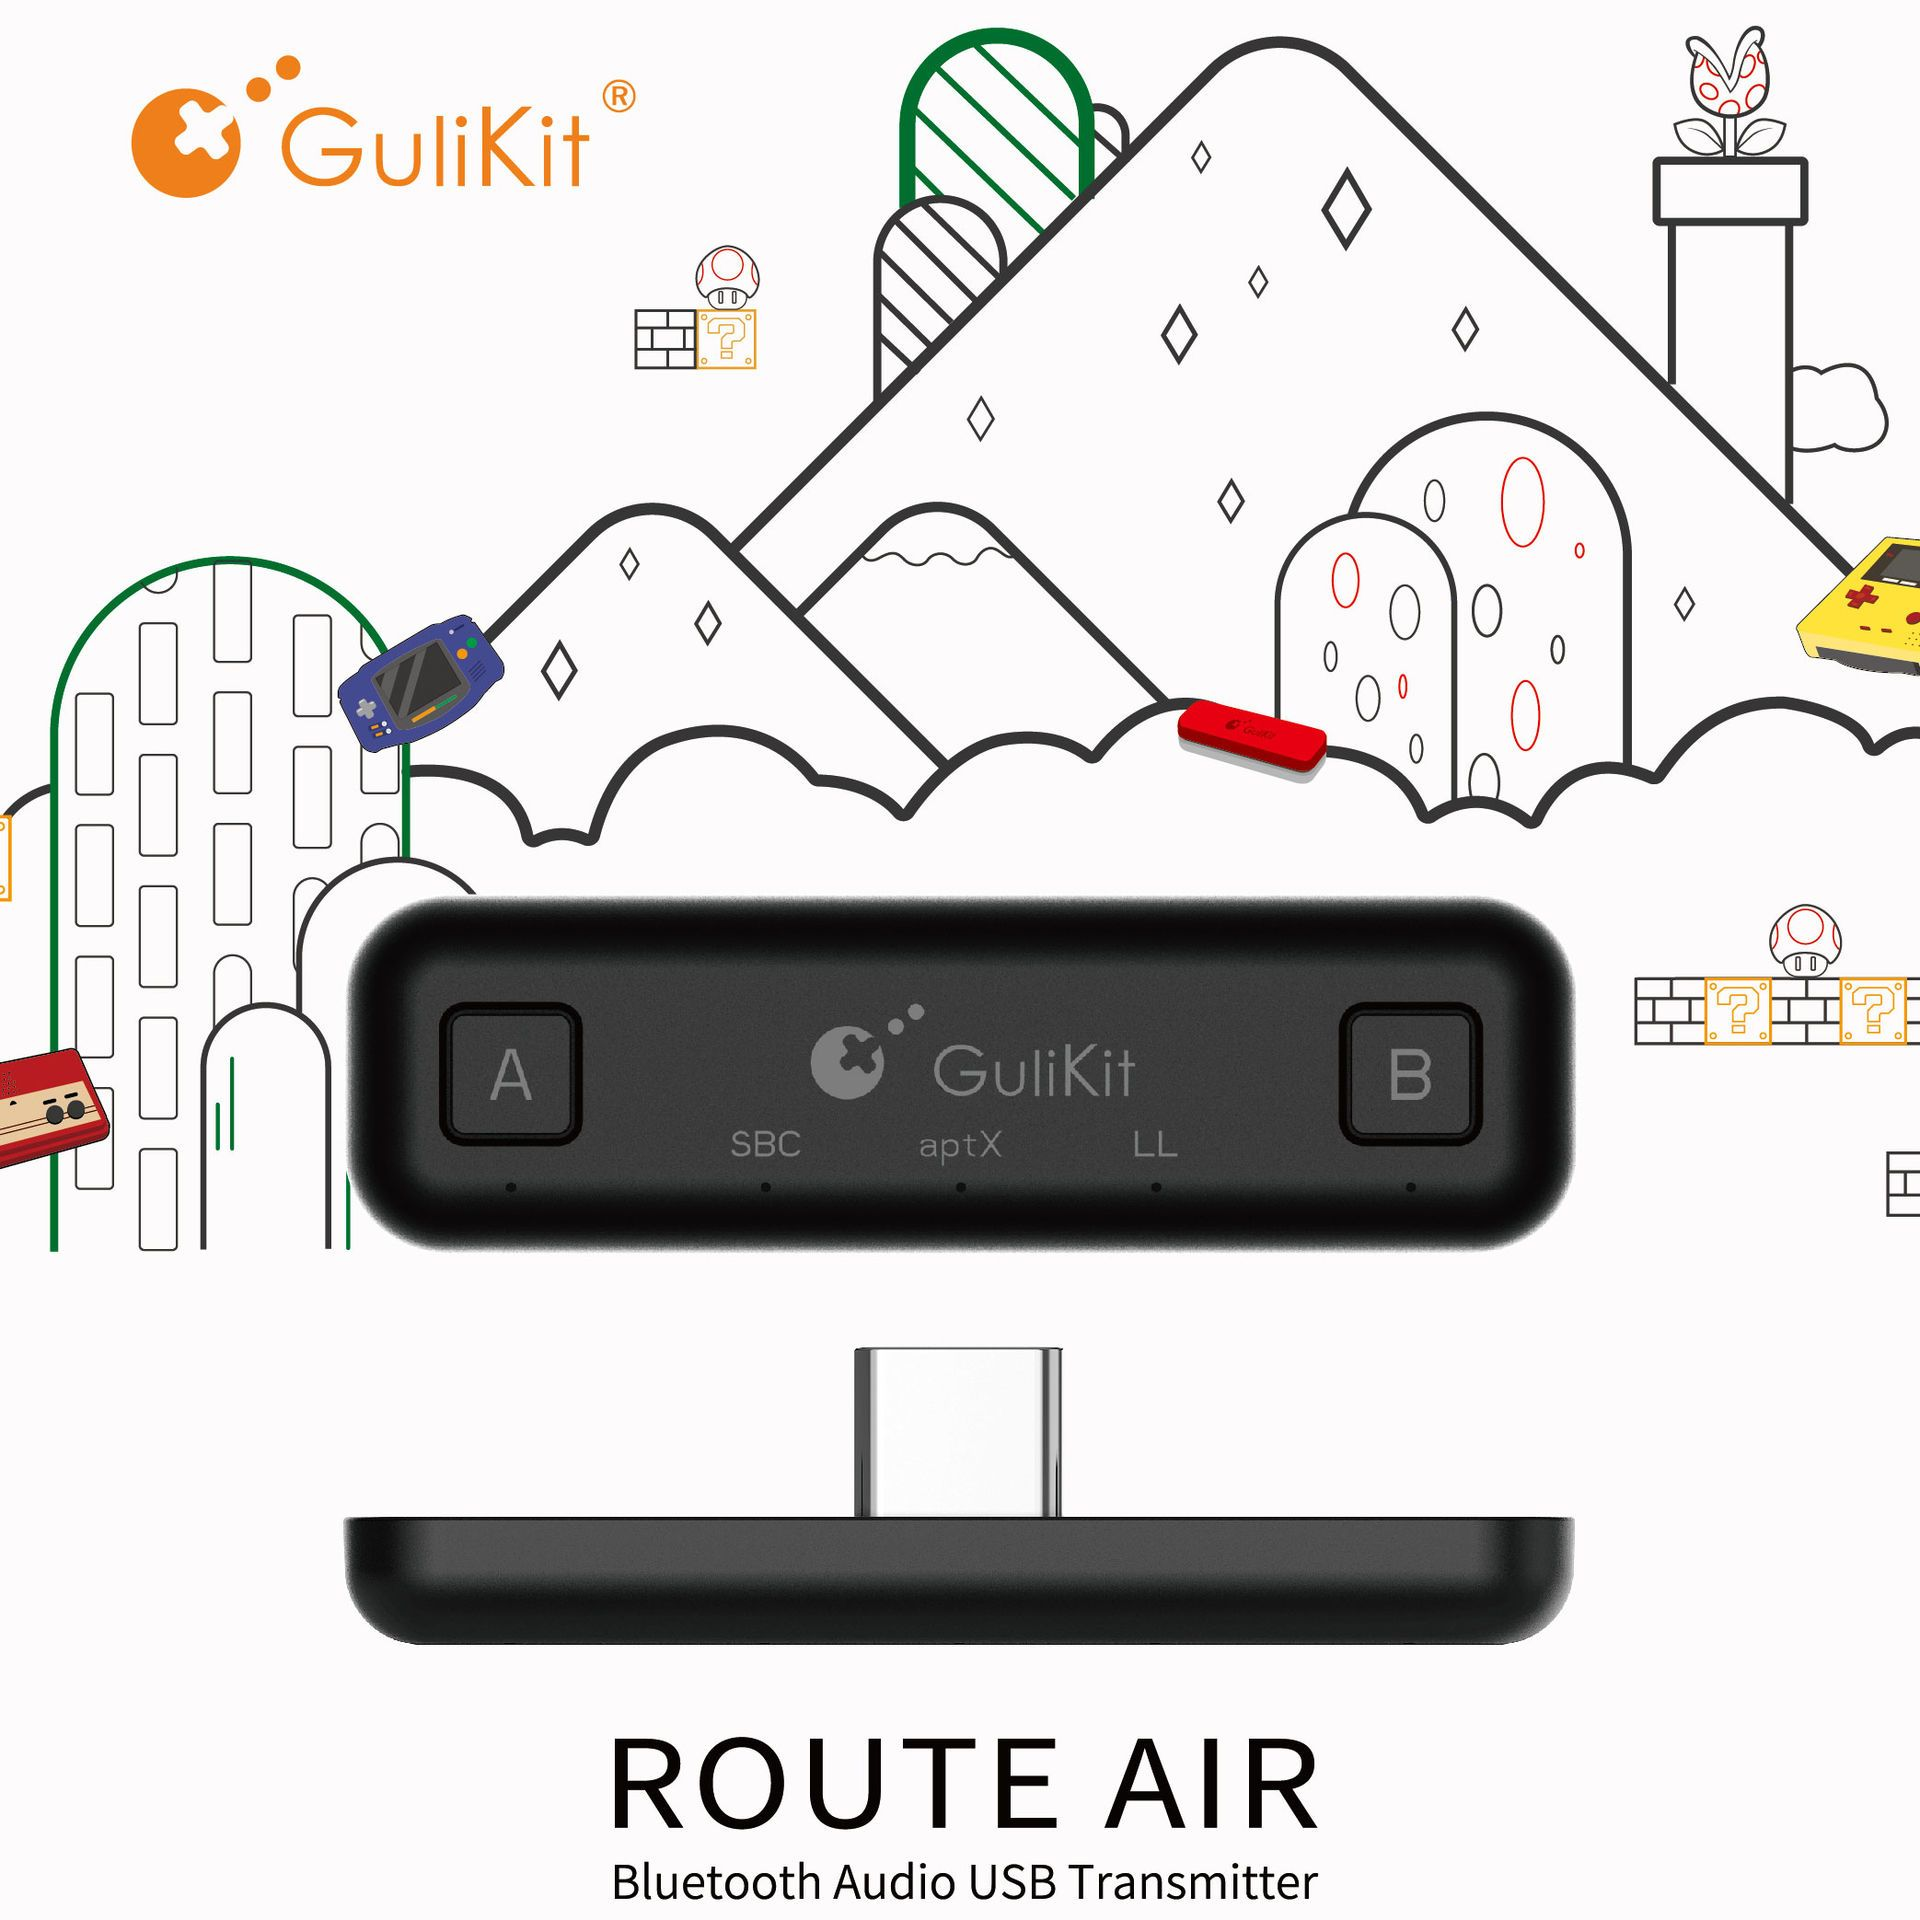 GuliKit-Route-Air-Produktbild